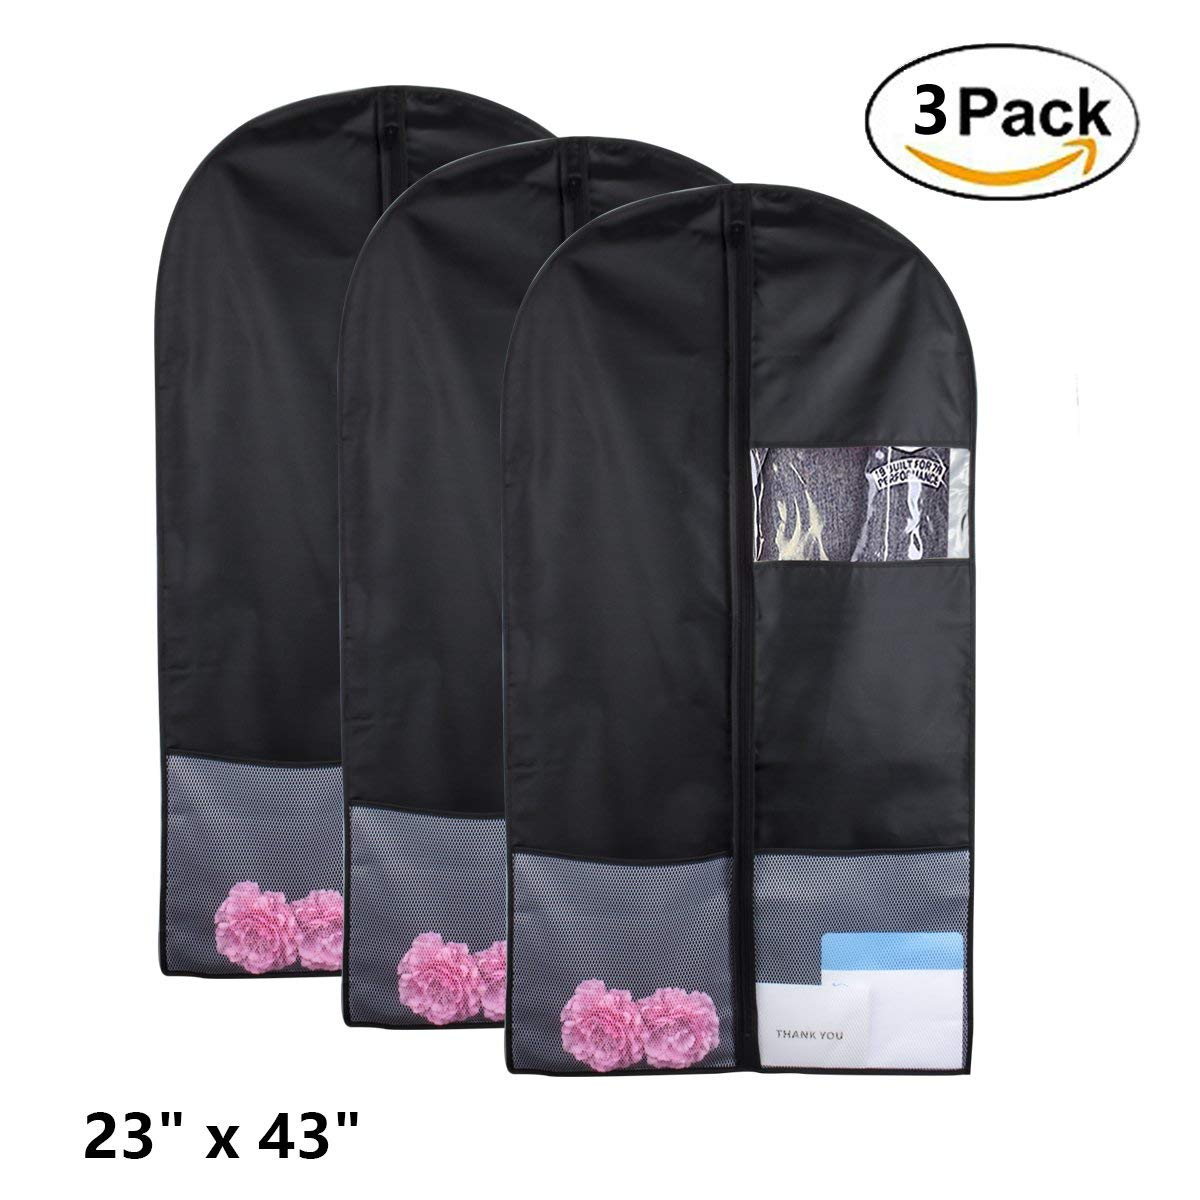 """Kernorv 43"""" Breathable Dust-proof Garment Bags Suit Bag with Clear Window, Garment Bags for Storage or Travel, Garment Bag Covers for Luggage Suits Coats Jackets or Dresses (Set of 3)"""